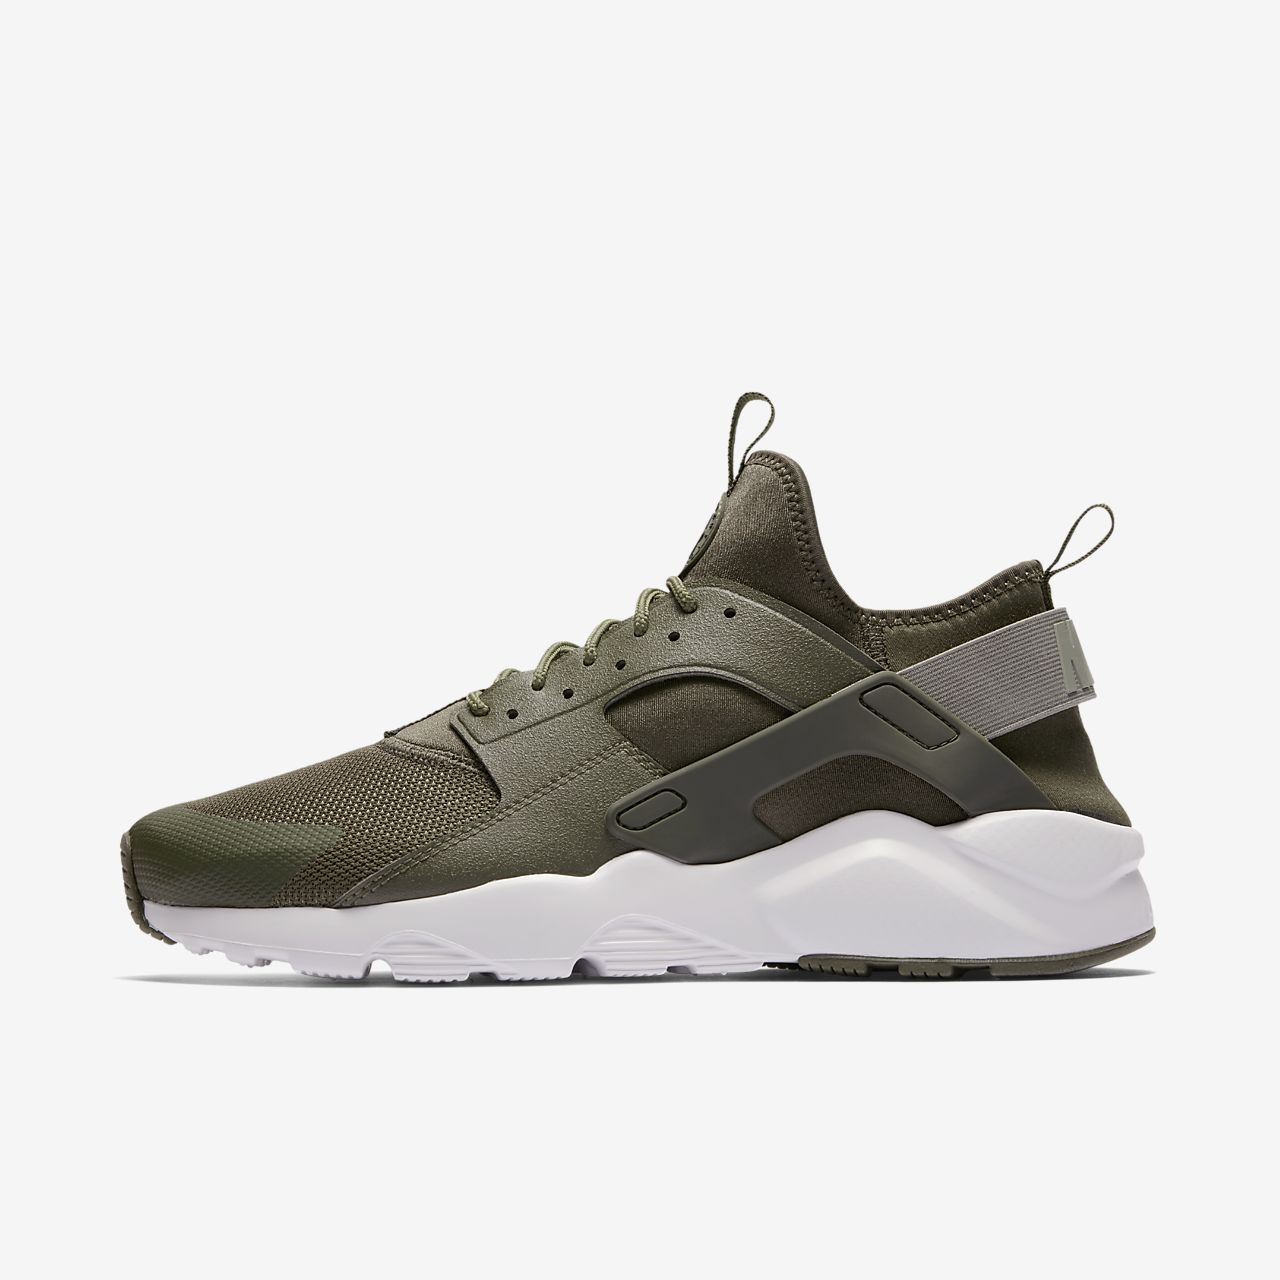 pretty nice 1c19b 1e93c Men s Shoe. Nike Air Huarache Run Ultra